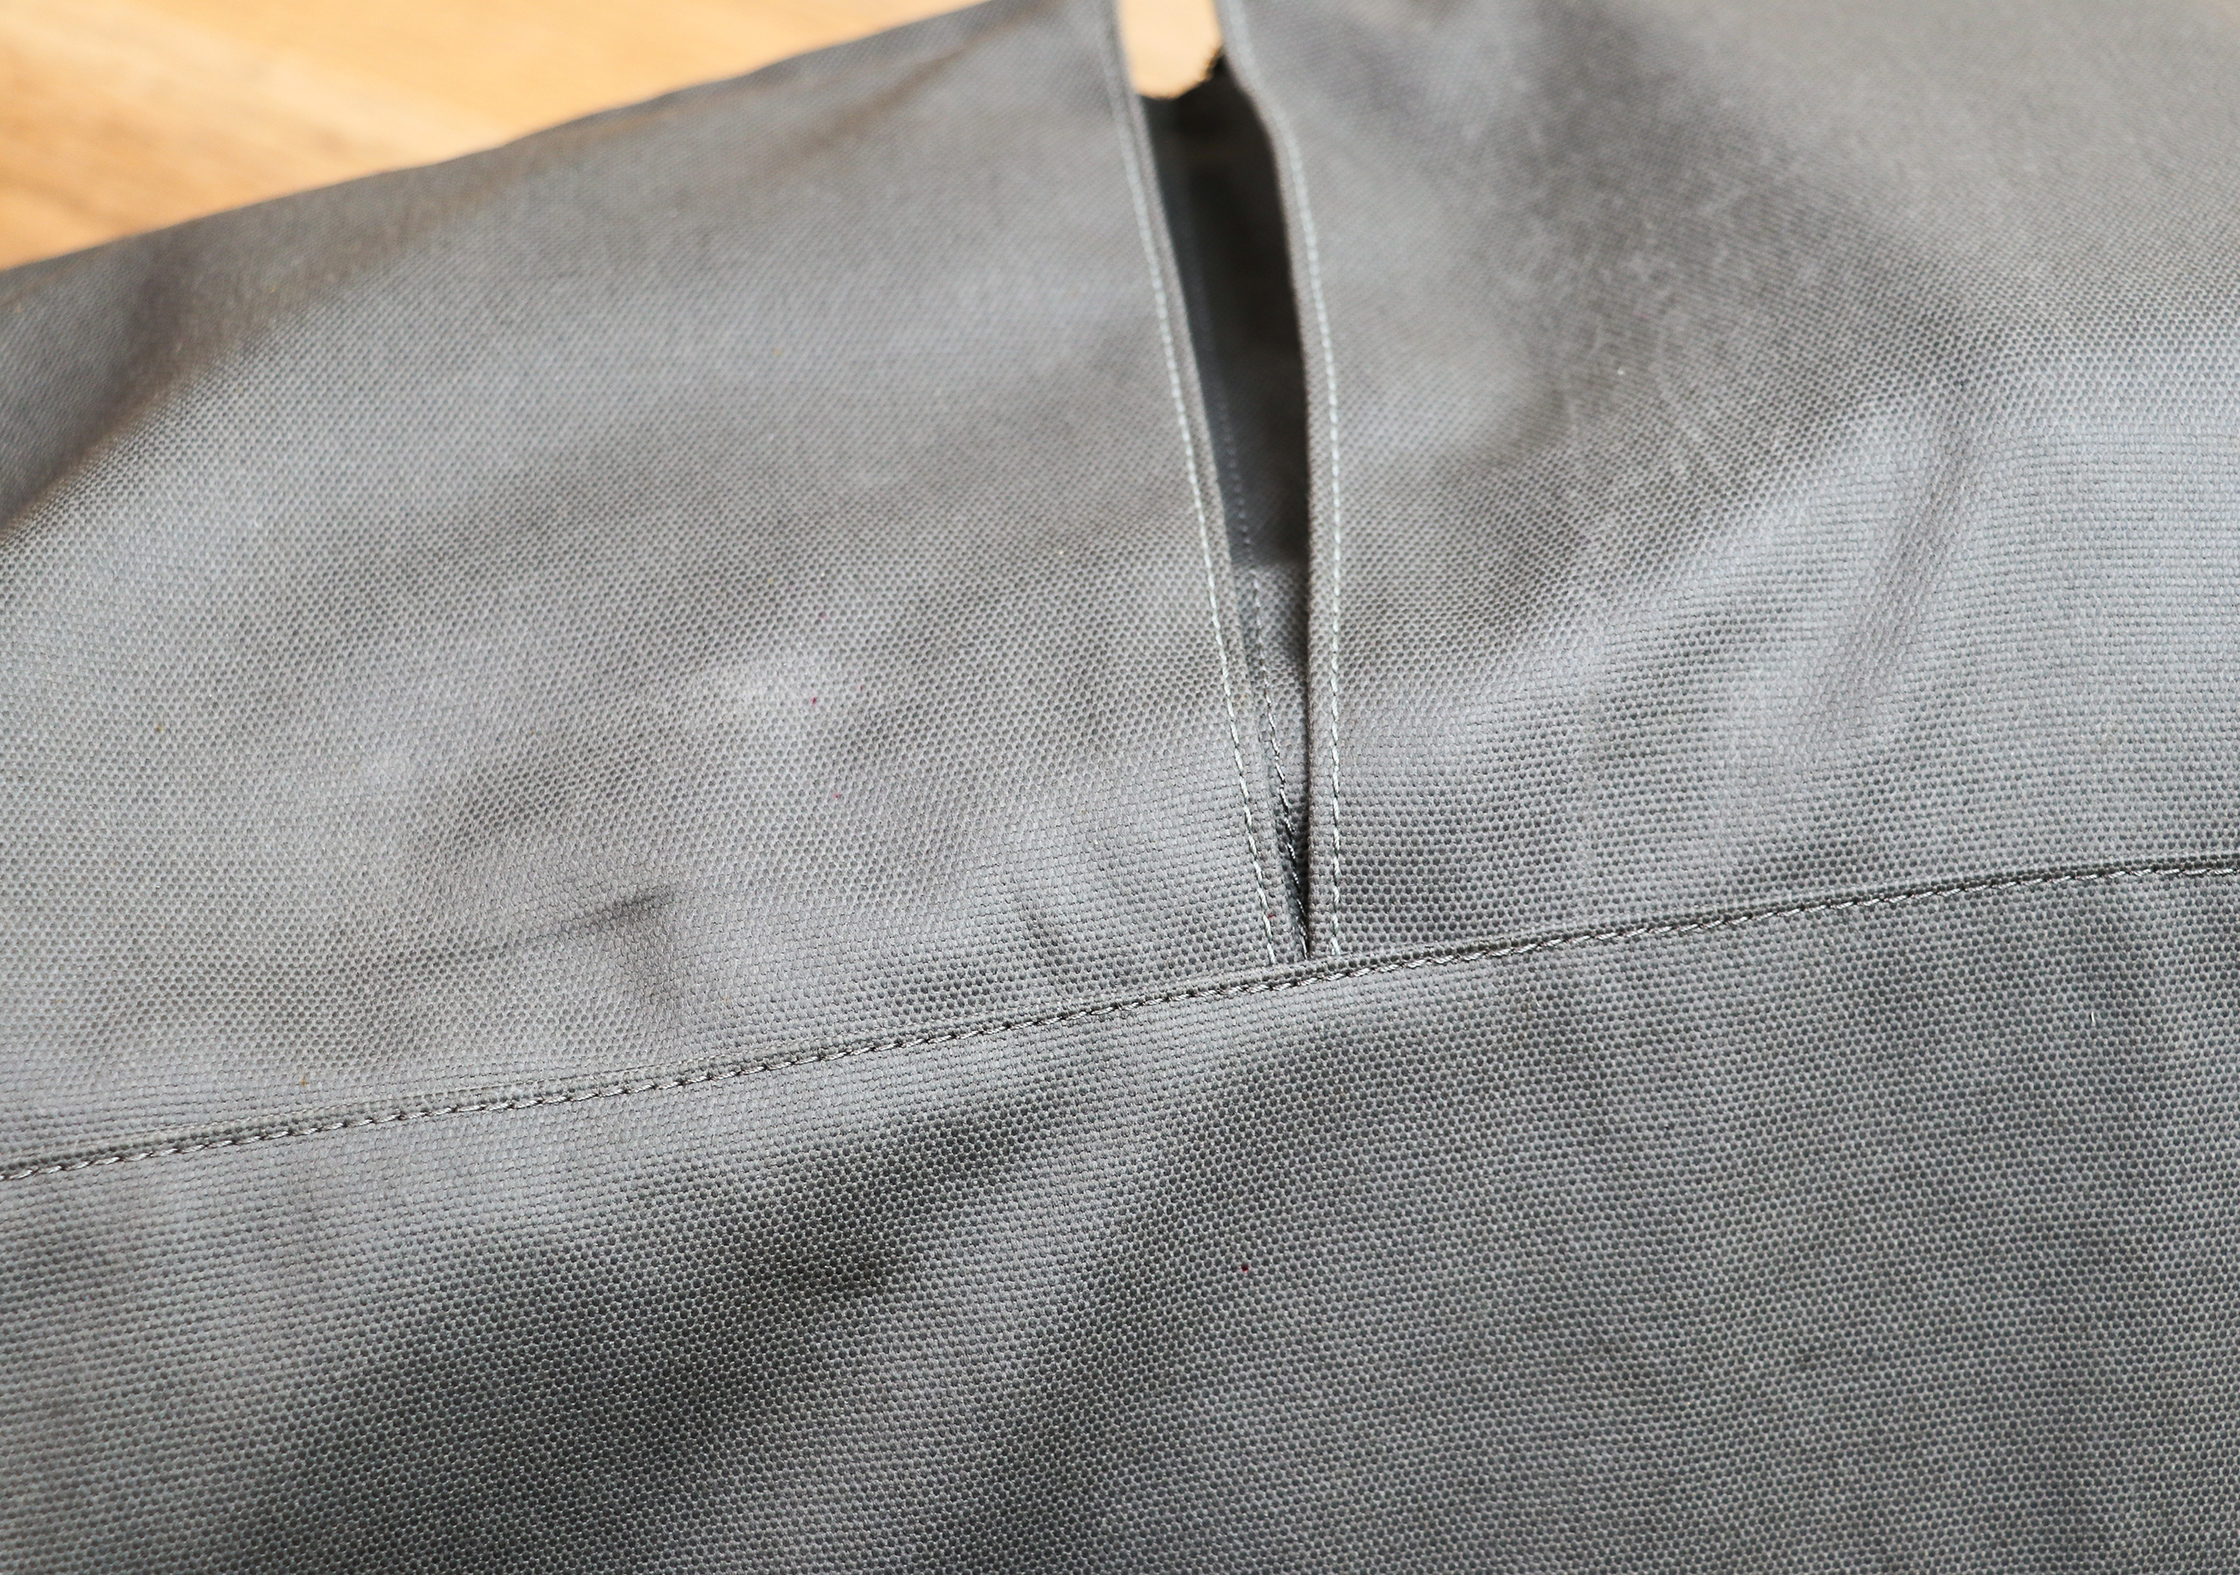 Abrasion Marks On The Coated Polyester Canvas